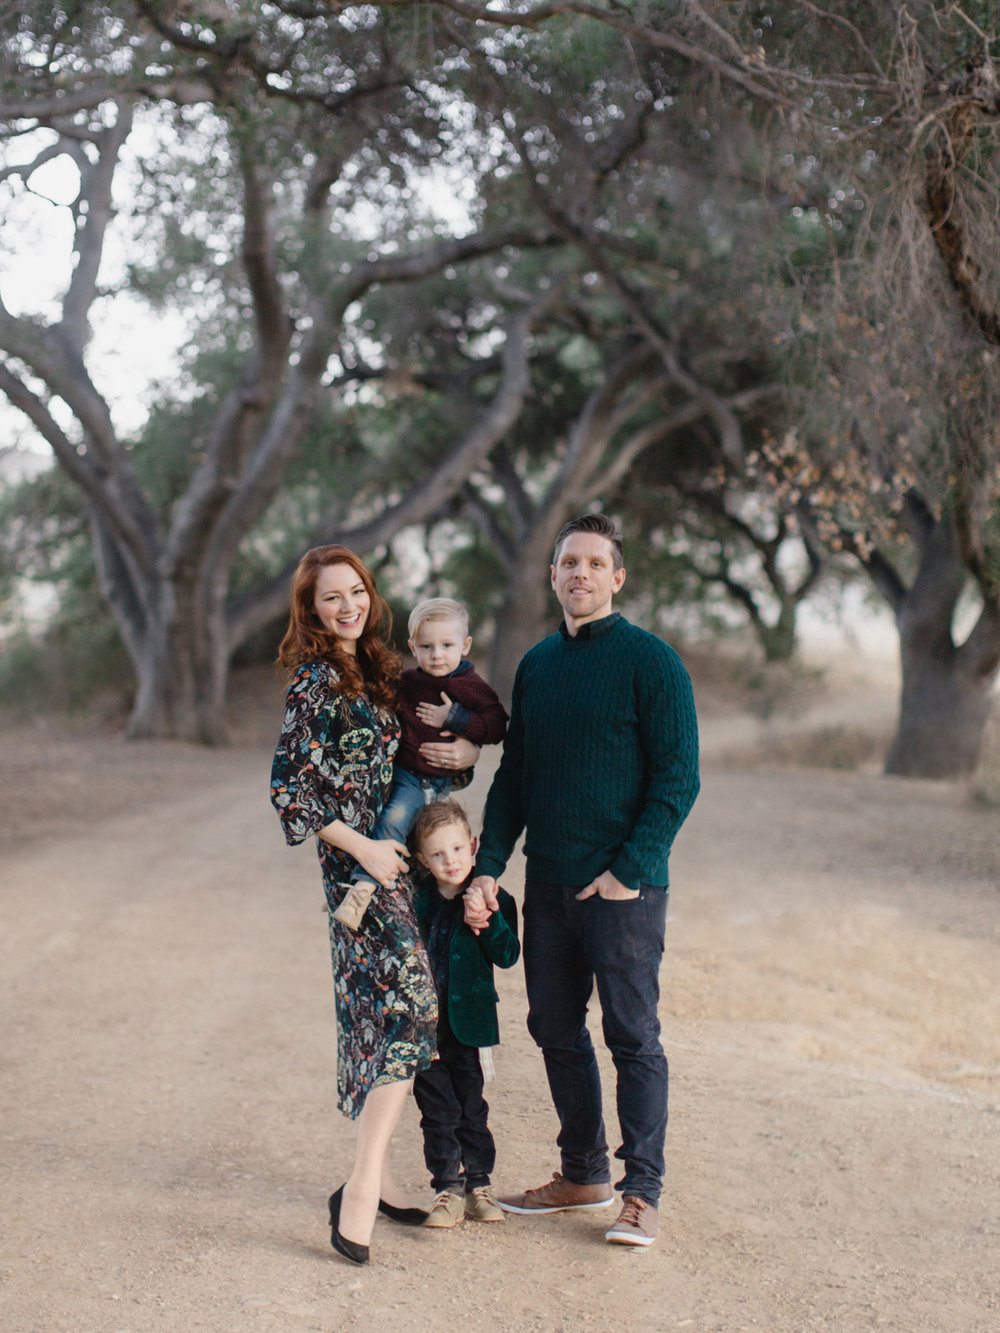 Los Angeles Family Photographer - Belessa Family-007.jpg